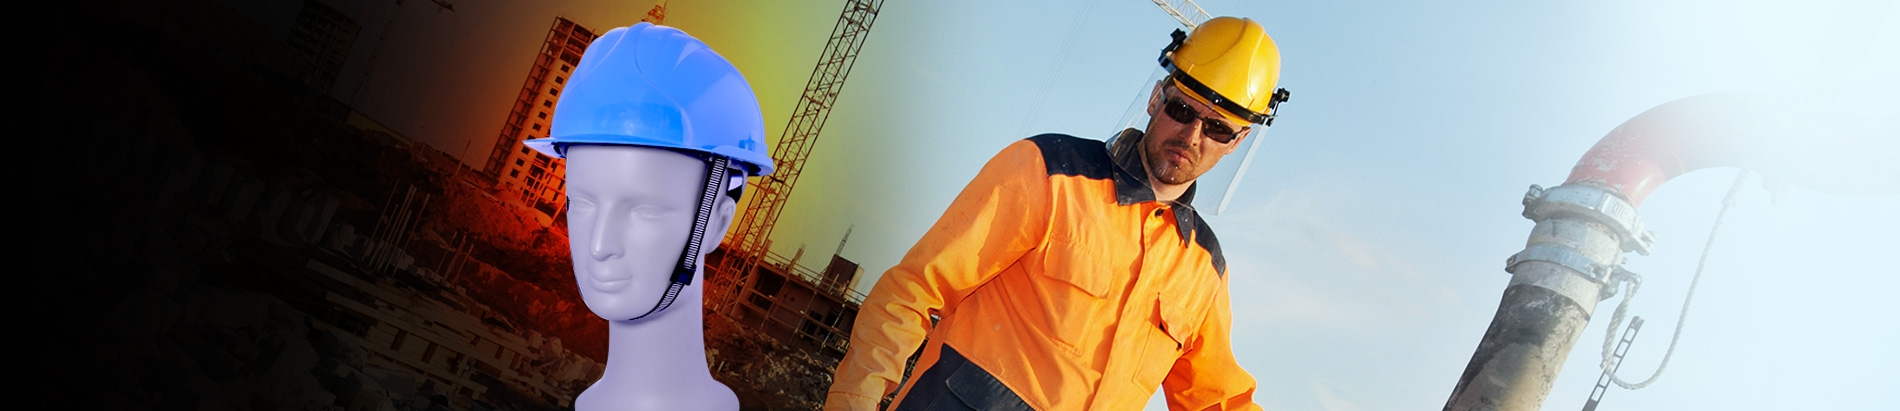 Eyevex - Suppliers of Personal Protective Equipment (PPE) in